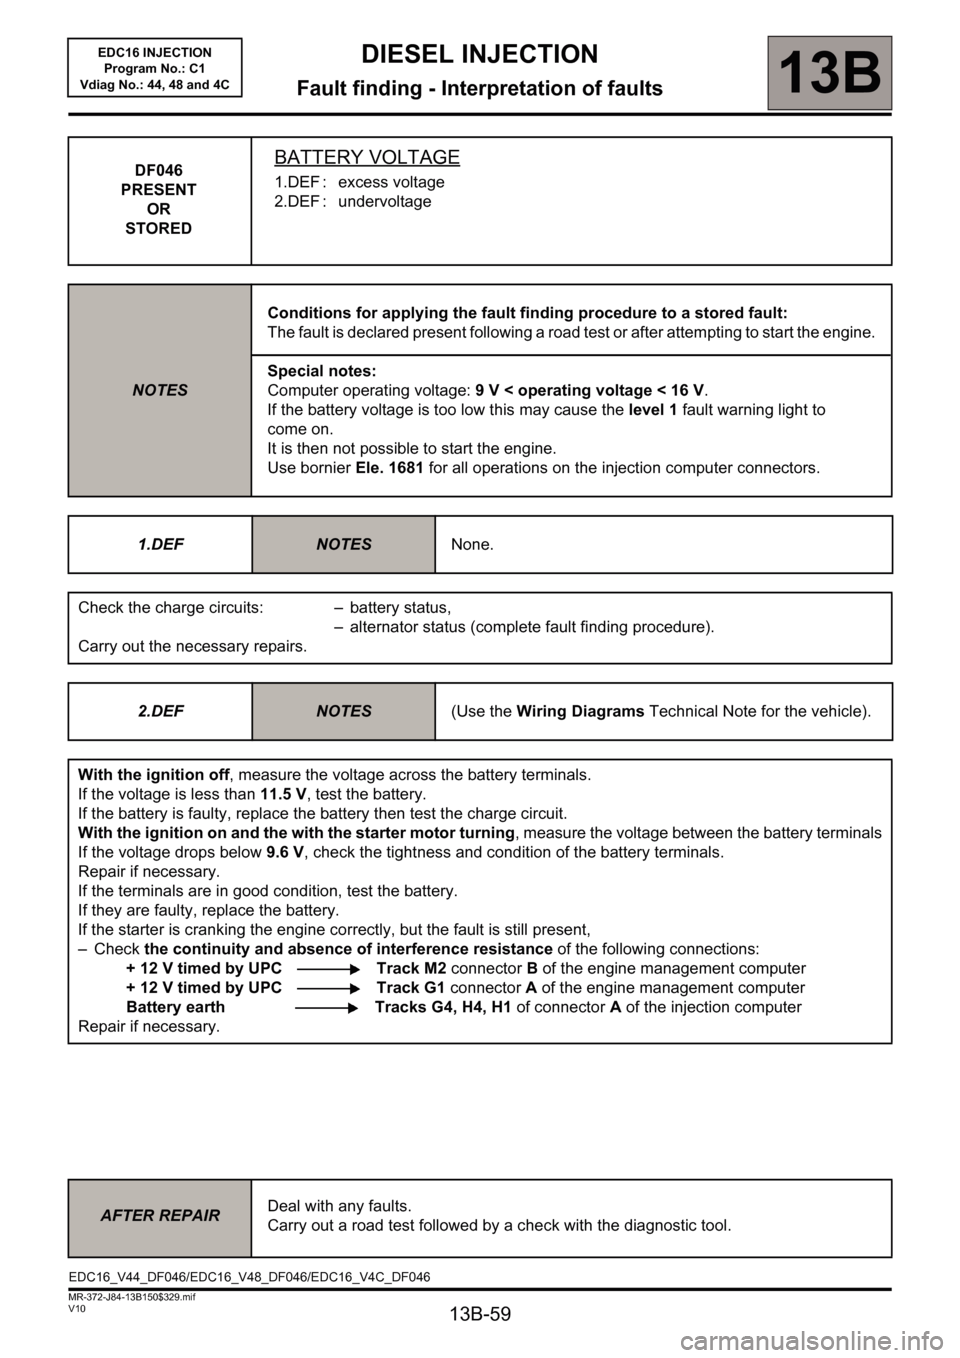 RENAULT SCENIC 2011 J95 / 3.G Engine And Peripherals EDC16 Injection Workshop Manual, Page 59